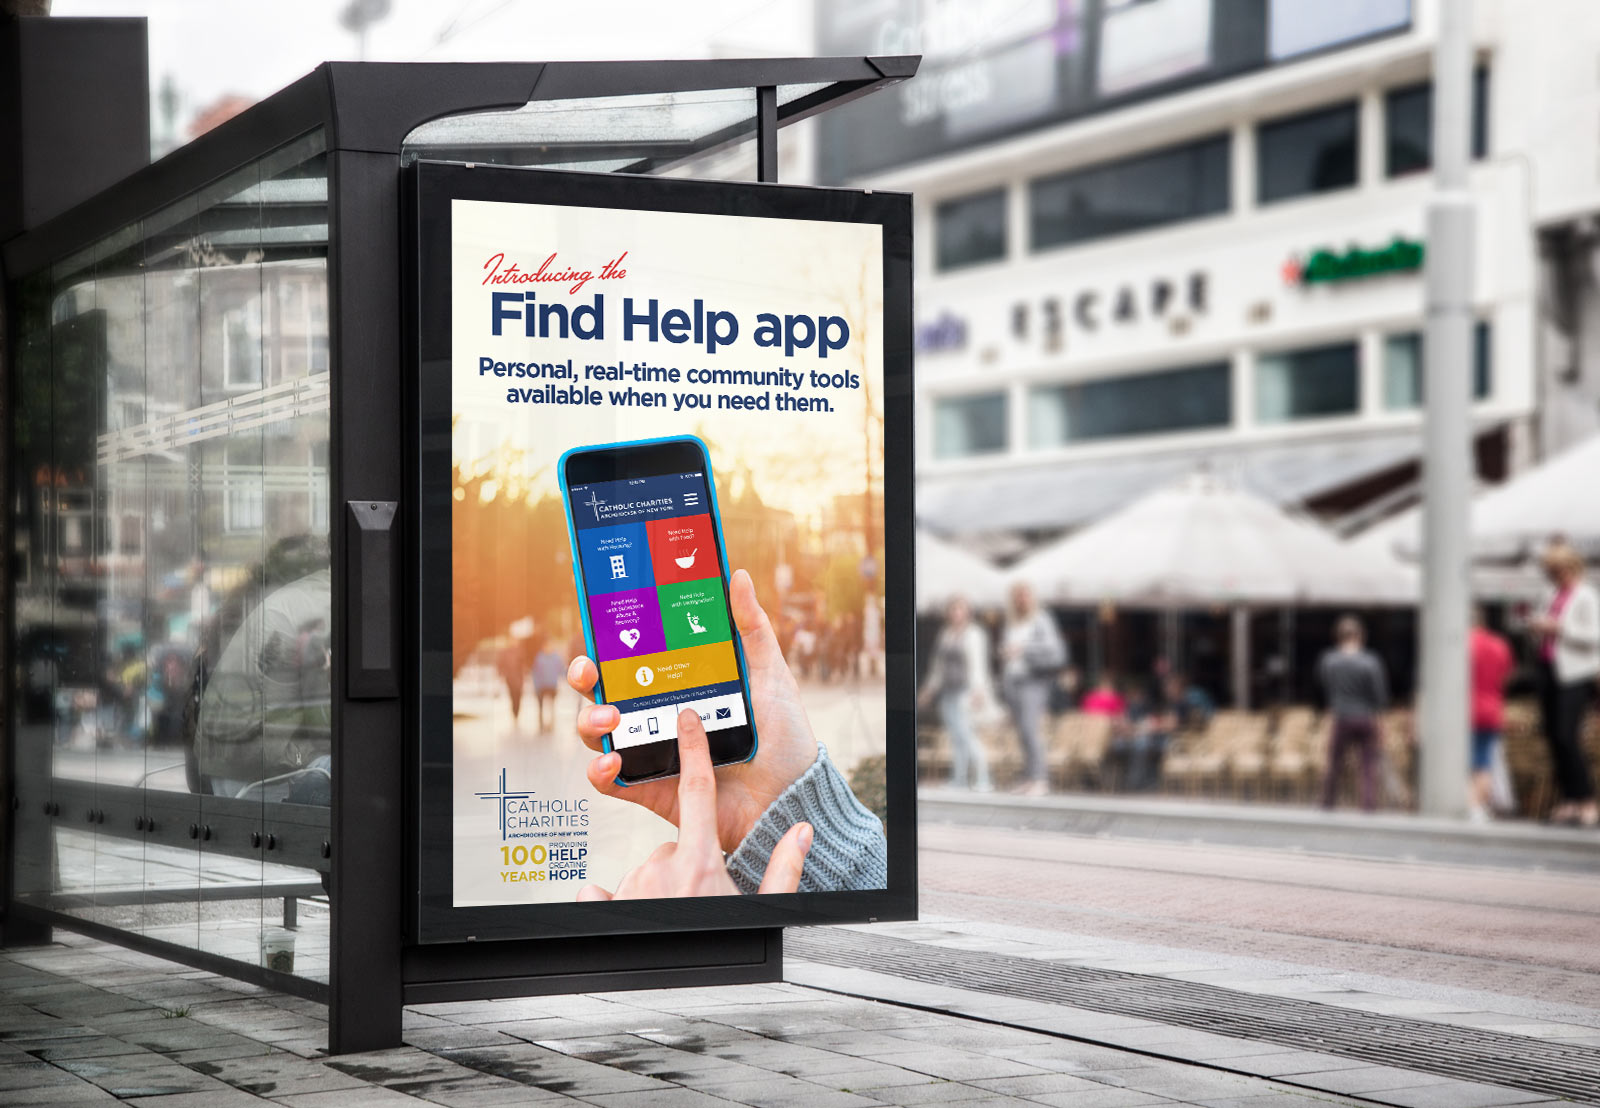 Catholic Charities Find Help Poster